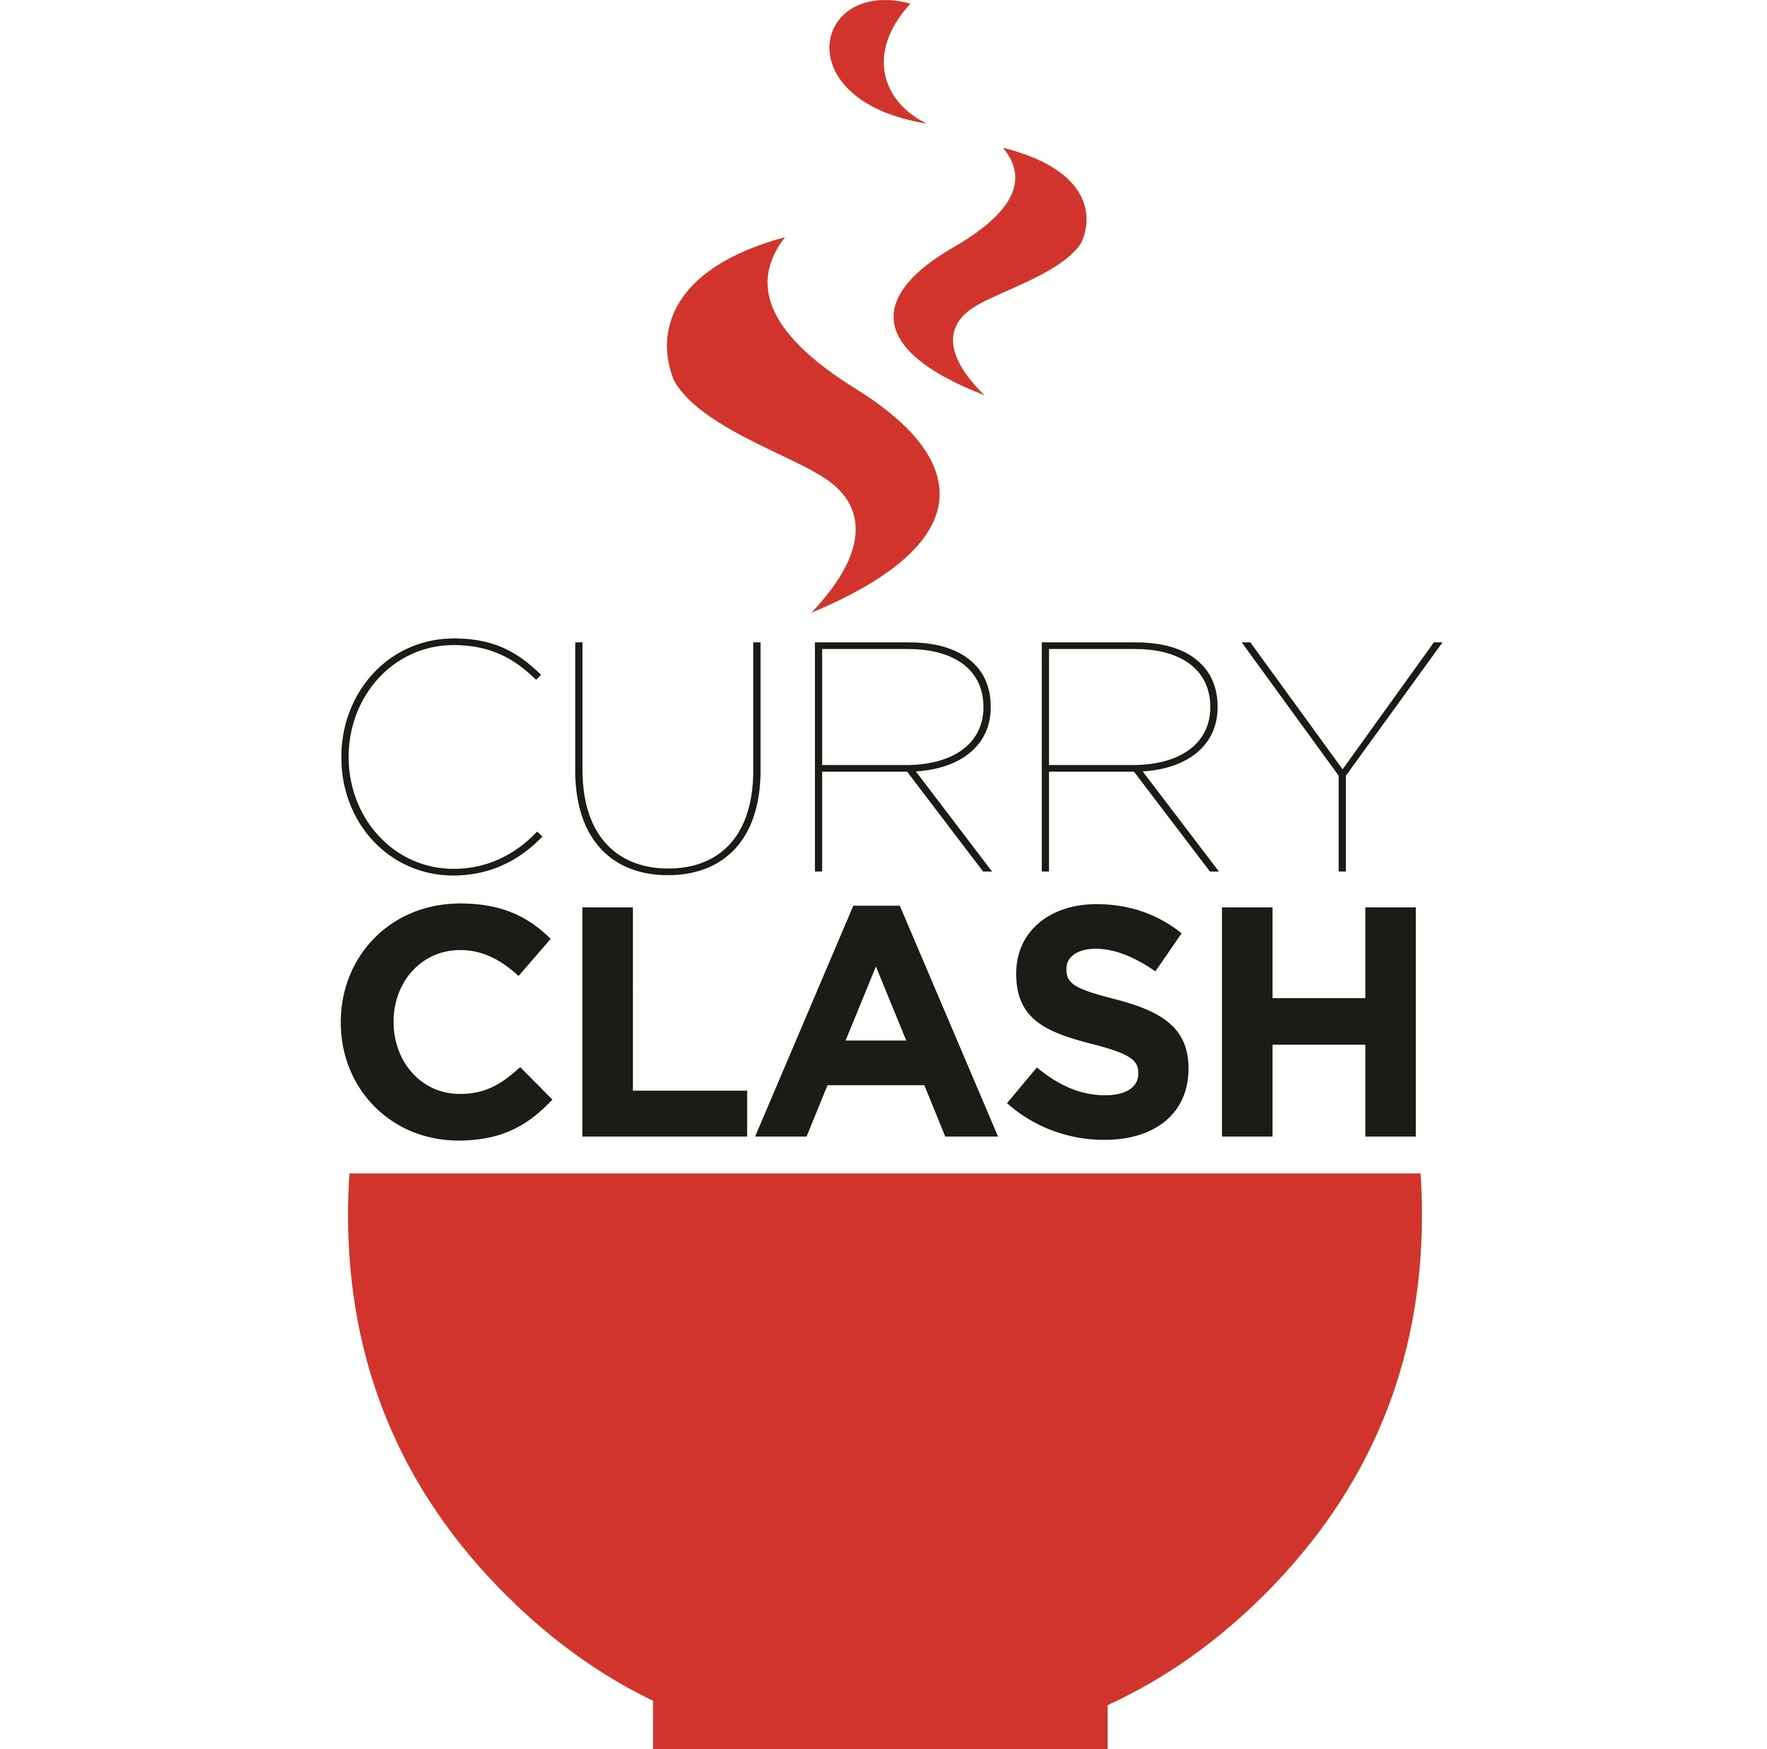 Curry Clash 2020 image